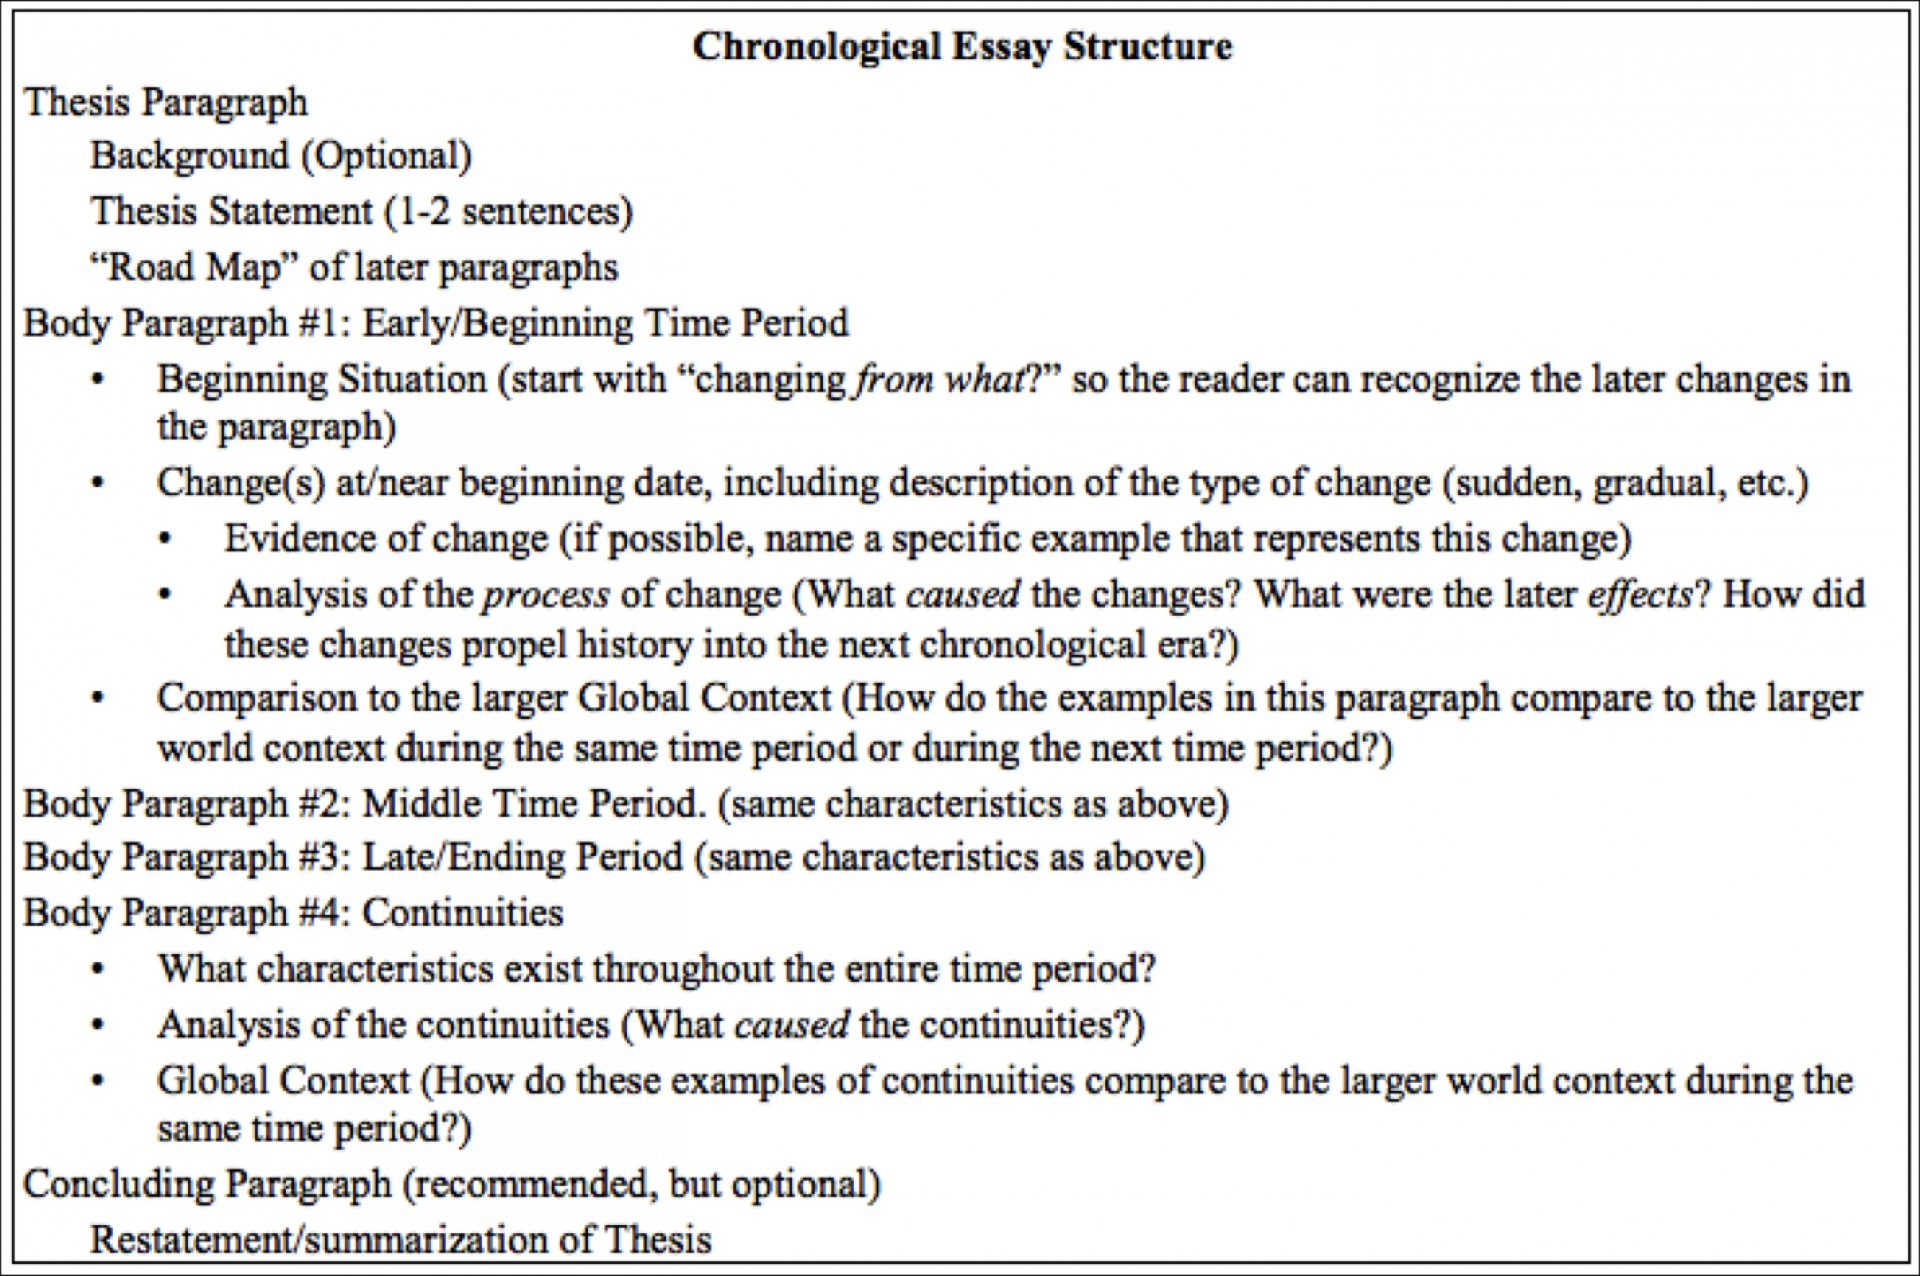 008 Ccot20essay20structure Essay Example Structure Incredible Types Pdf Organizational 1920